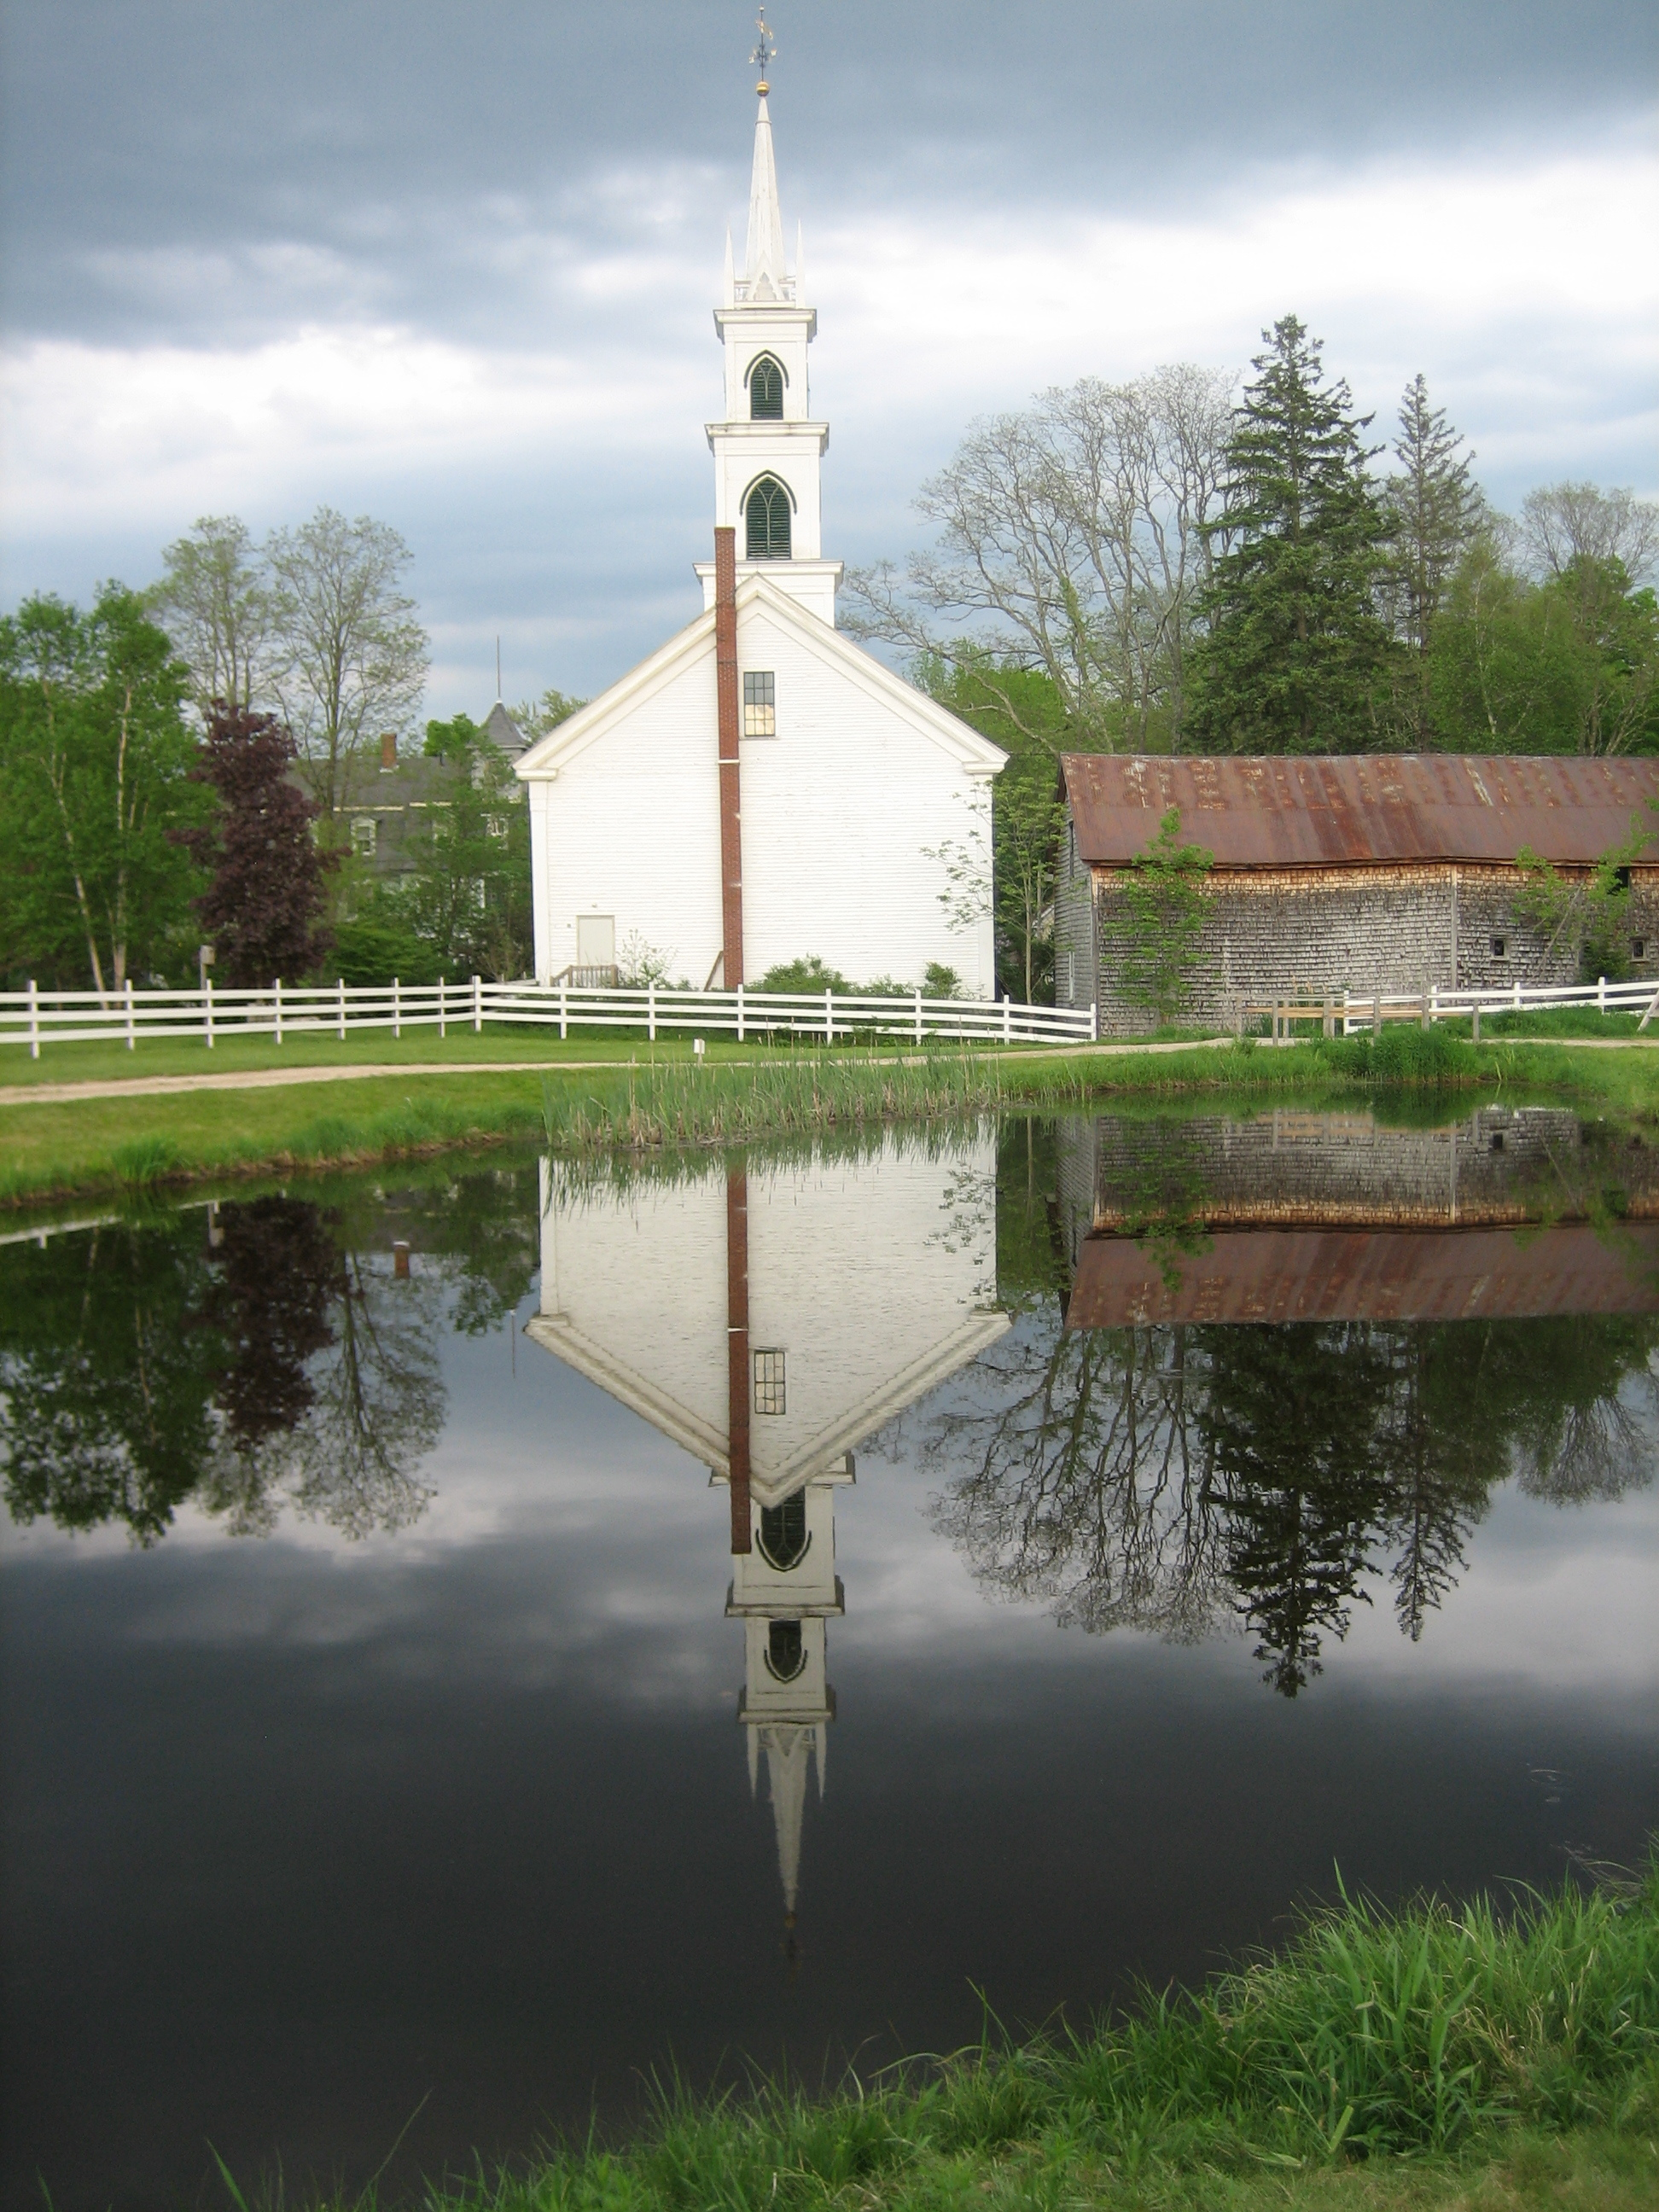 George Blanchette; The Congregational Church reflected in the Remick Museum fish pond.